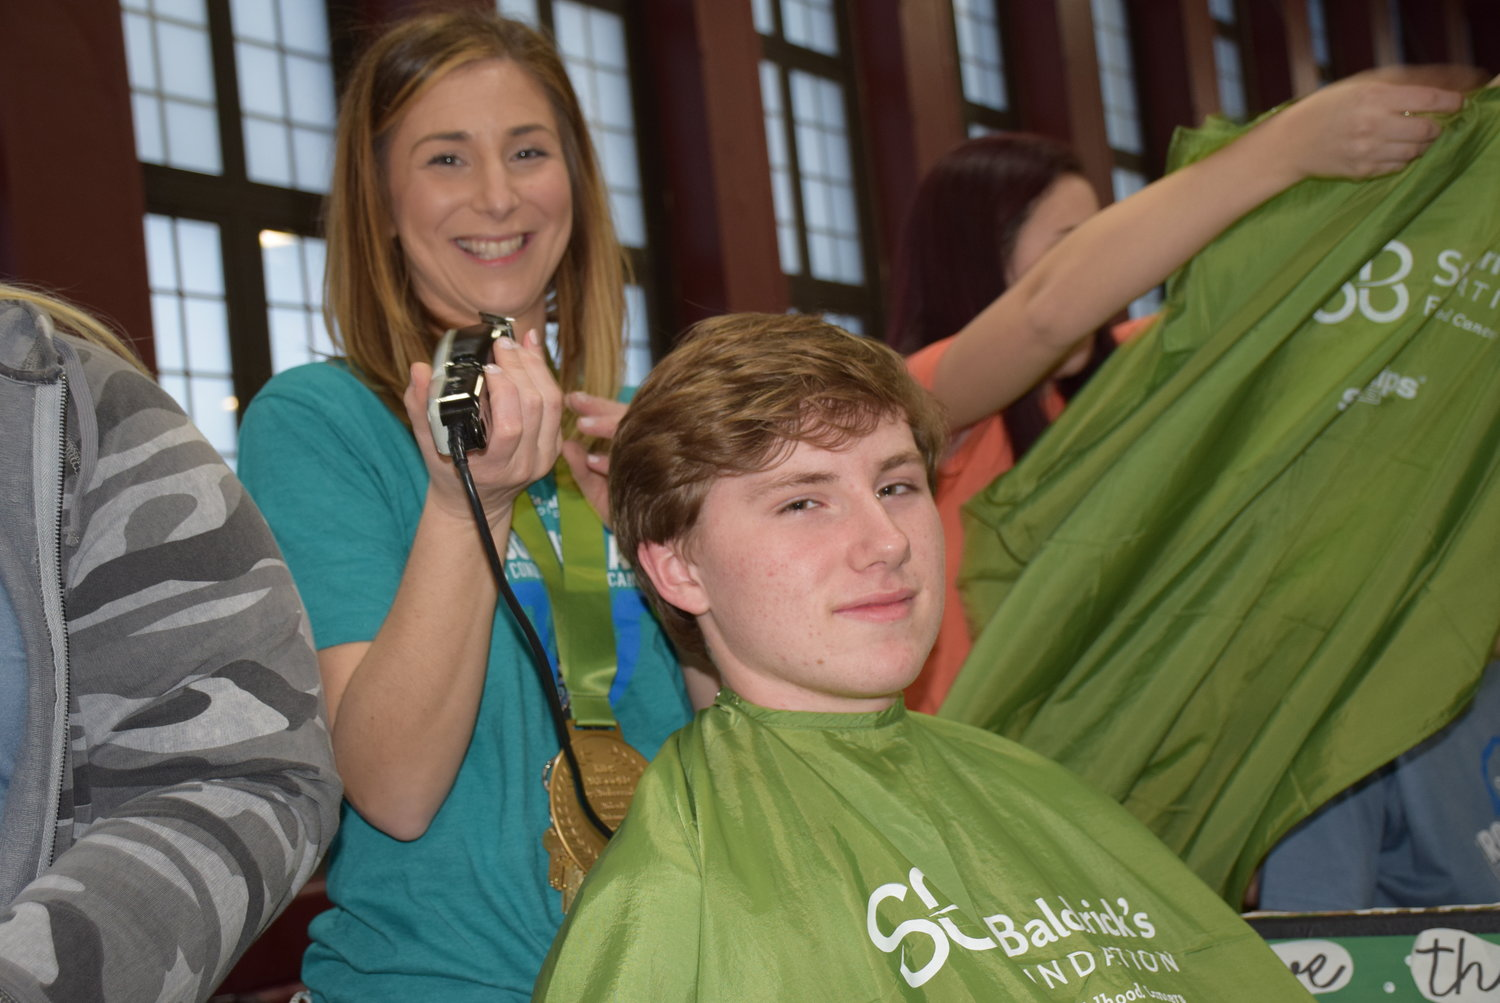 Mepham social studies teacher Jacqueline Geller was ready to shave student Pat Griffin's hair at the 2019 St. Baldrick's event.